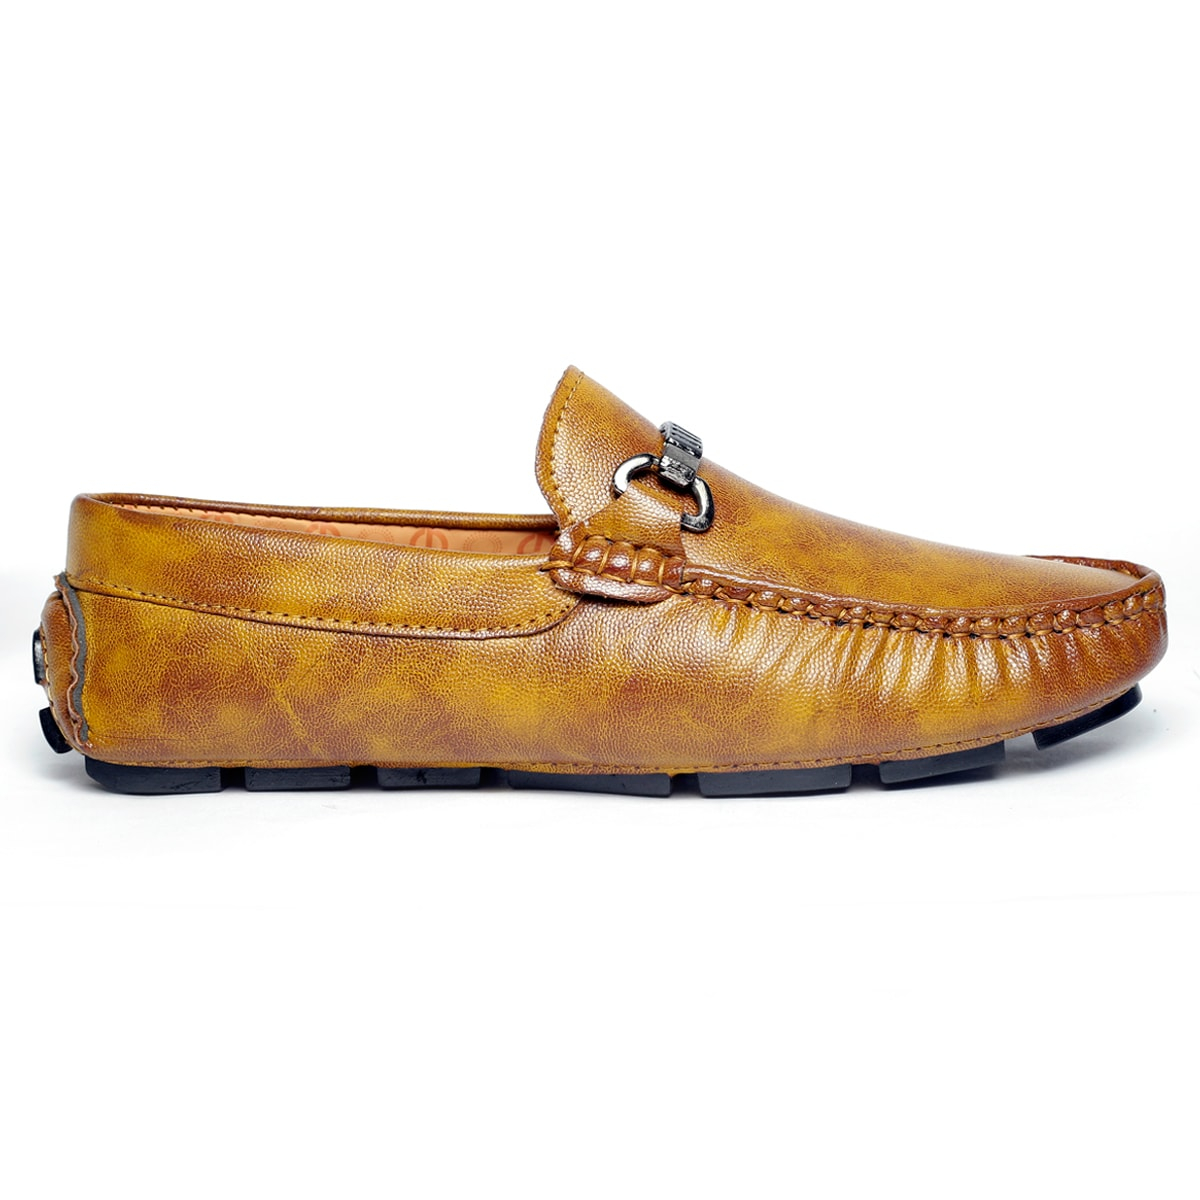 JK PORT COMFORTABLE, FASHIONABLE AND TRENDY LOAFERS JKPLF052TAN (TAN,6-10,8 PAIR)